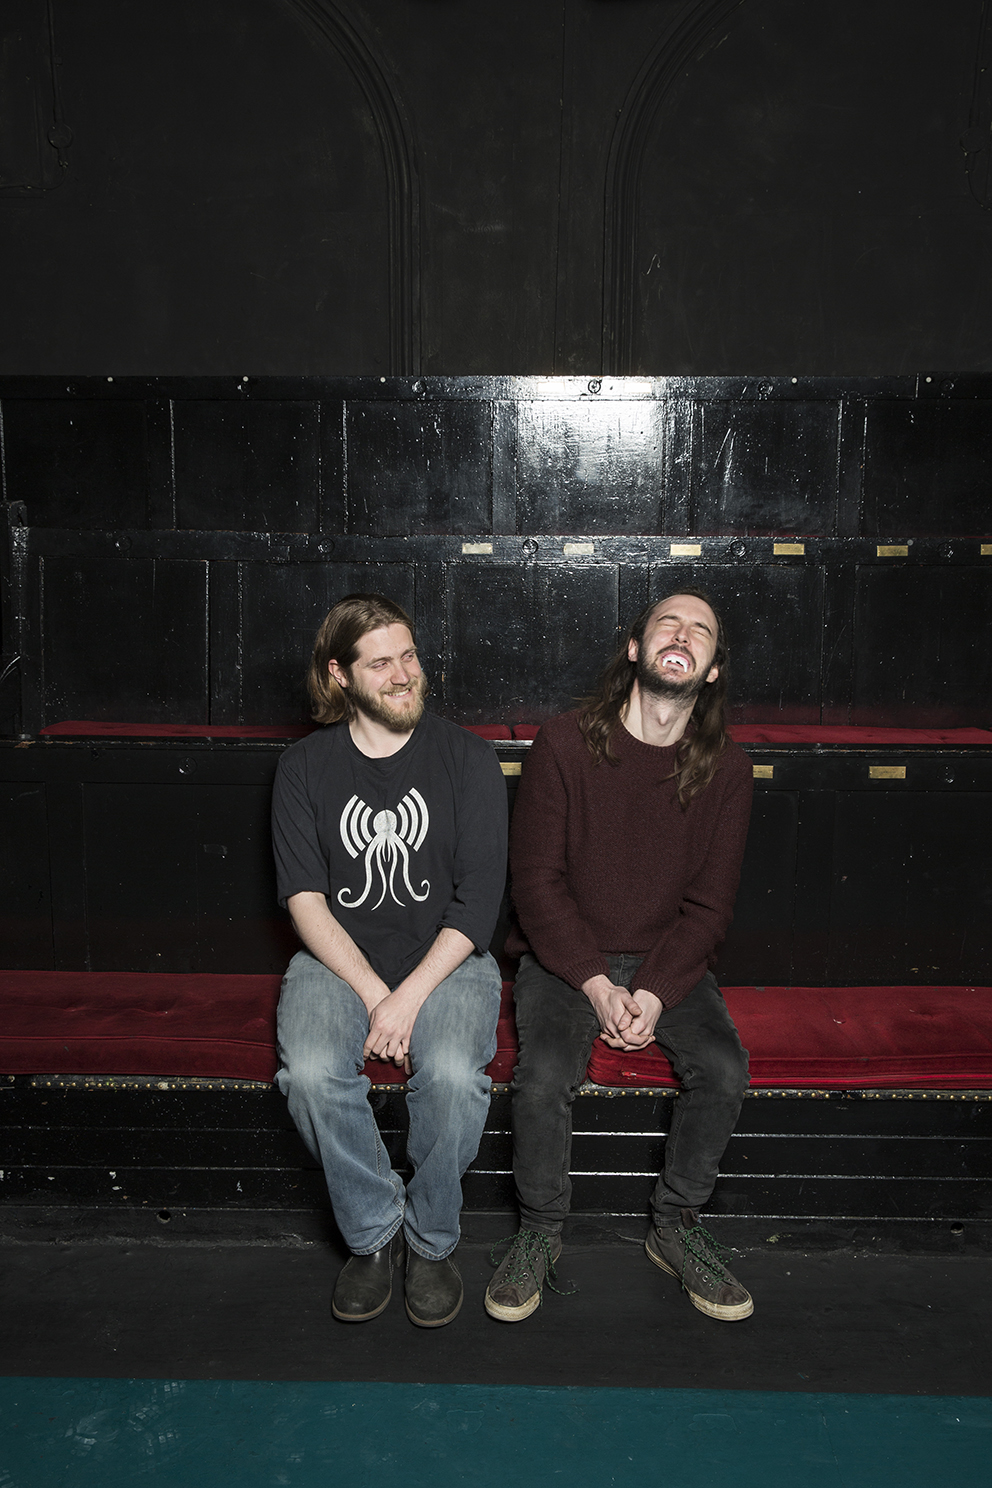 Stewart Pringle and Liam Welton, shot for the Two's Company feature for the Guradian Weekend